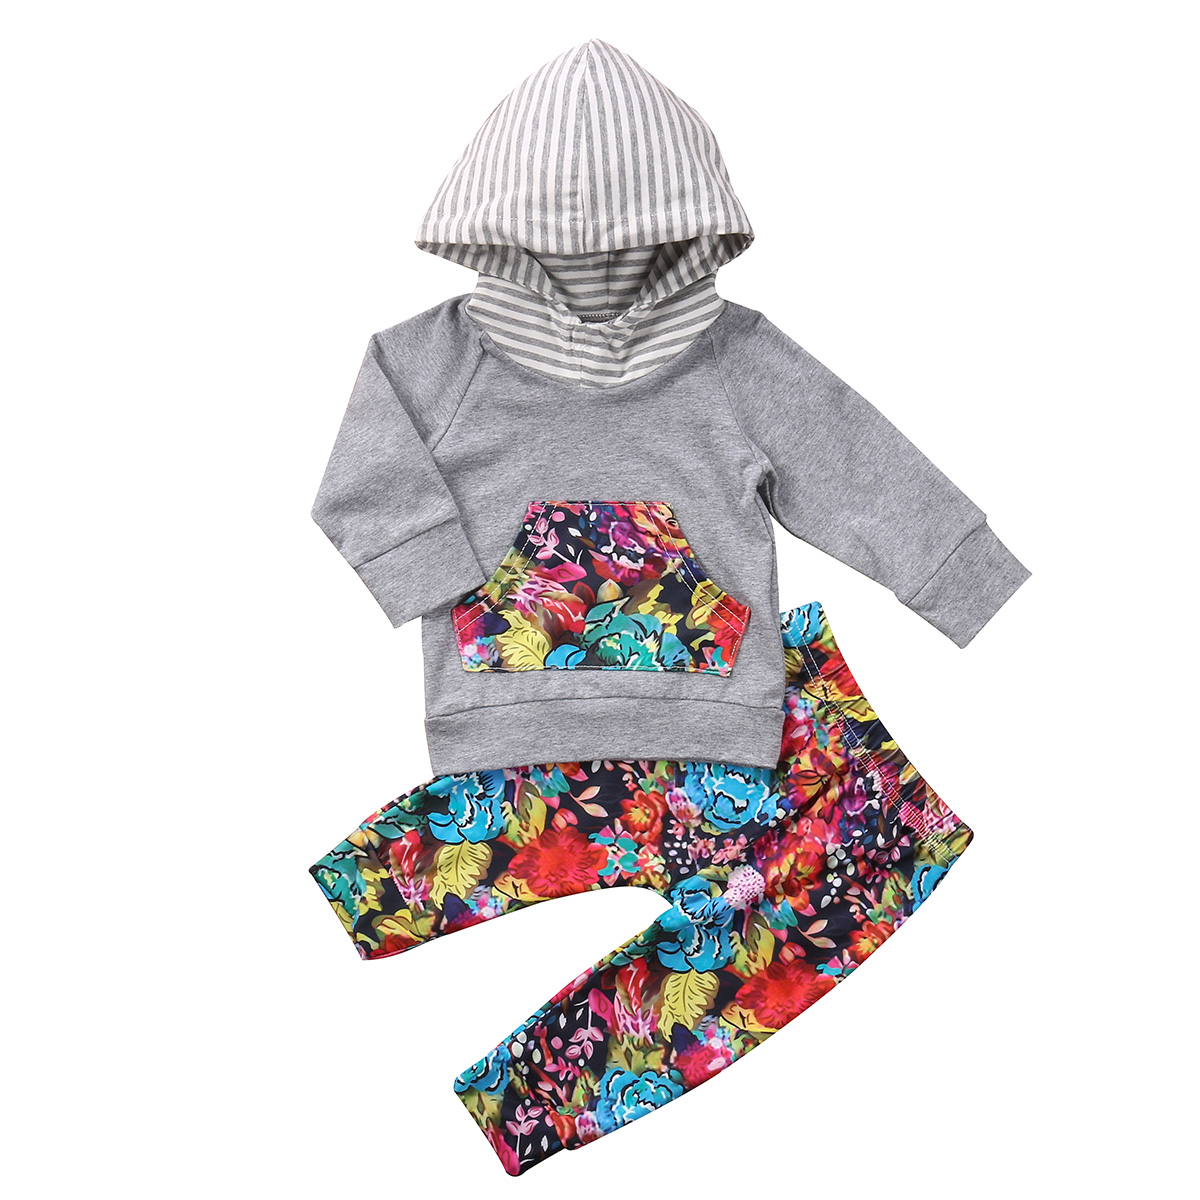 Autumn 2pcs Baby Girls Infant Clothing Set Hooded Sweatshirt Tops Long Sleeve Tops Flower Pants Outfits Clothes Set